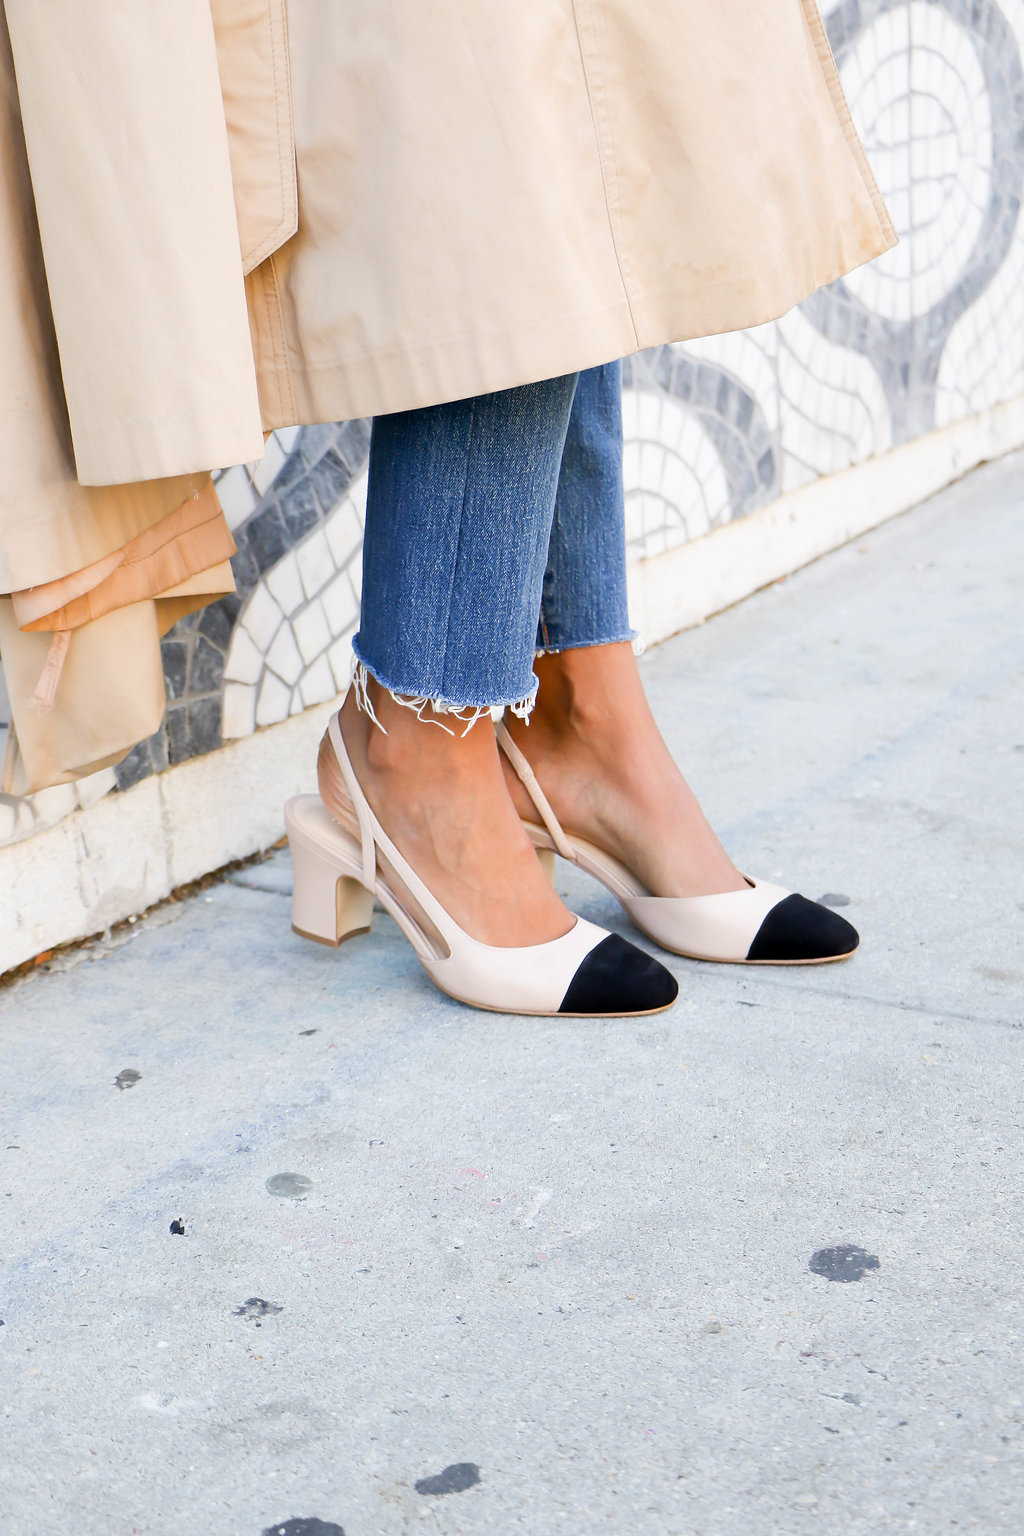 5 Fall Outfits To Wear With The Sling Back Heel